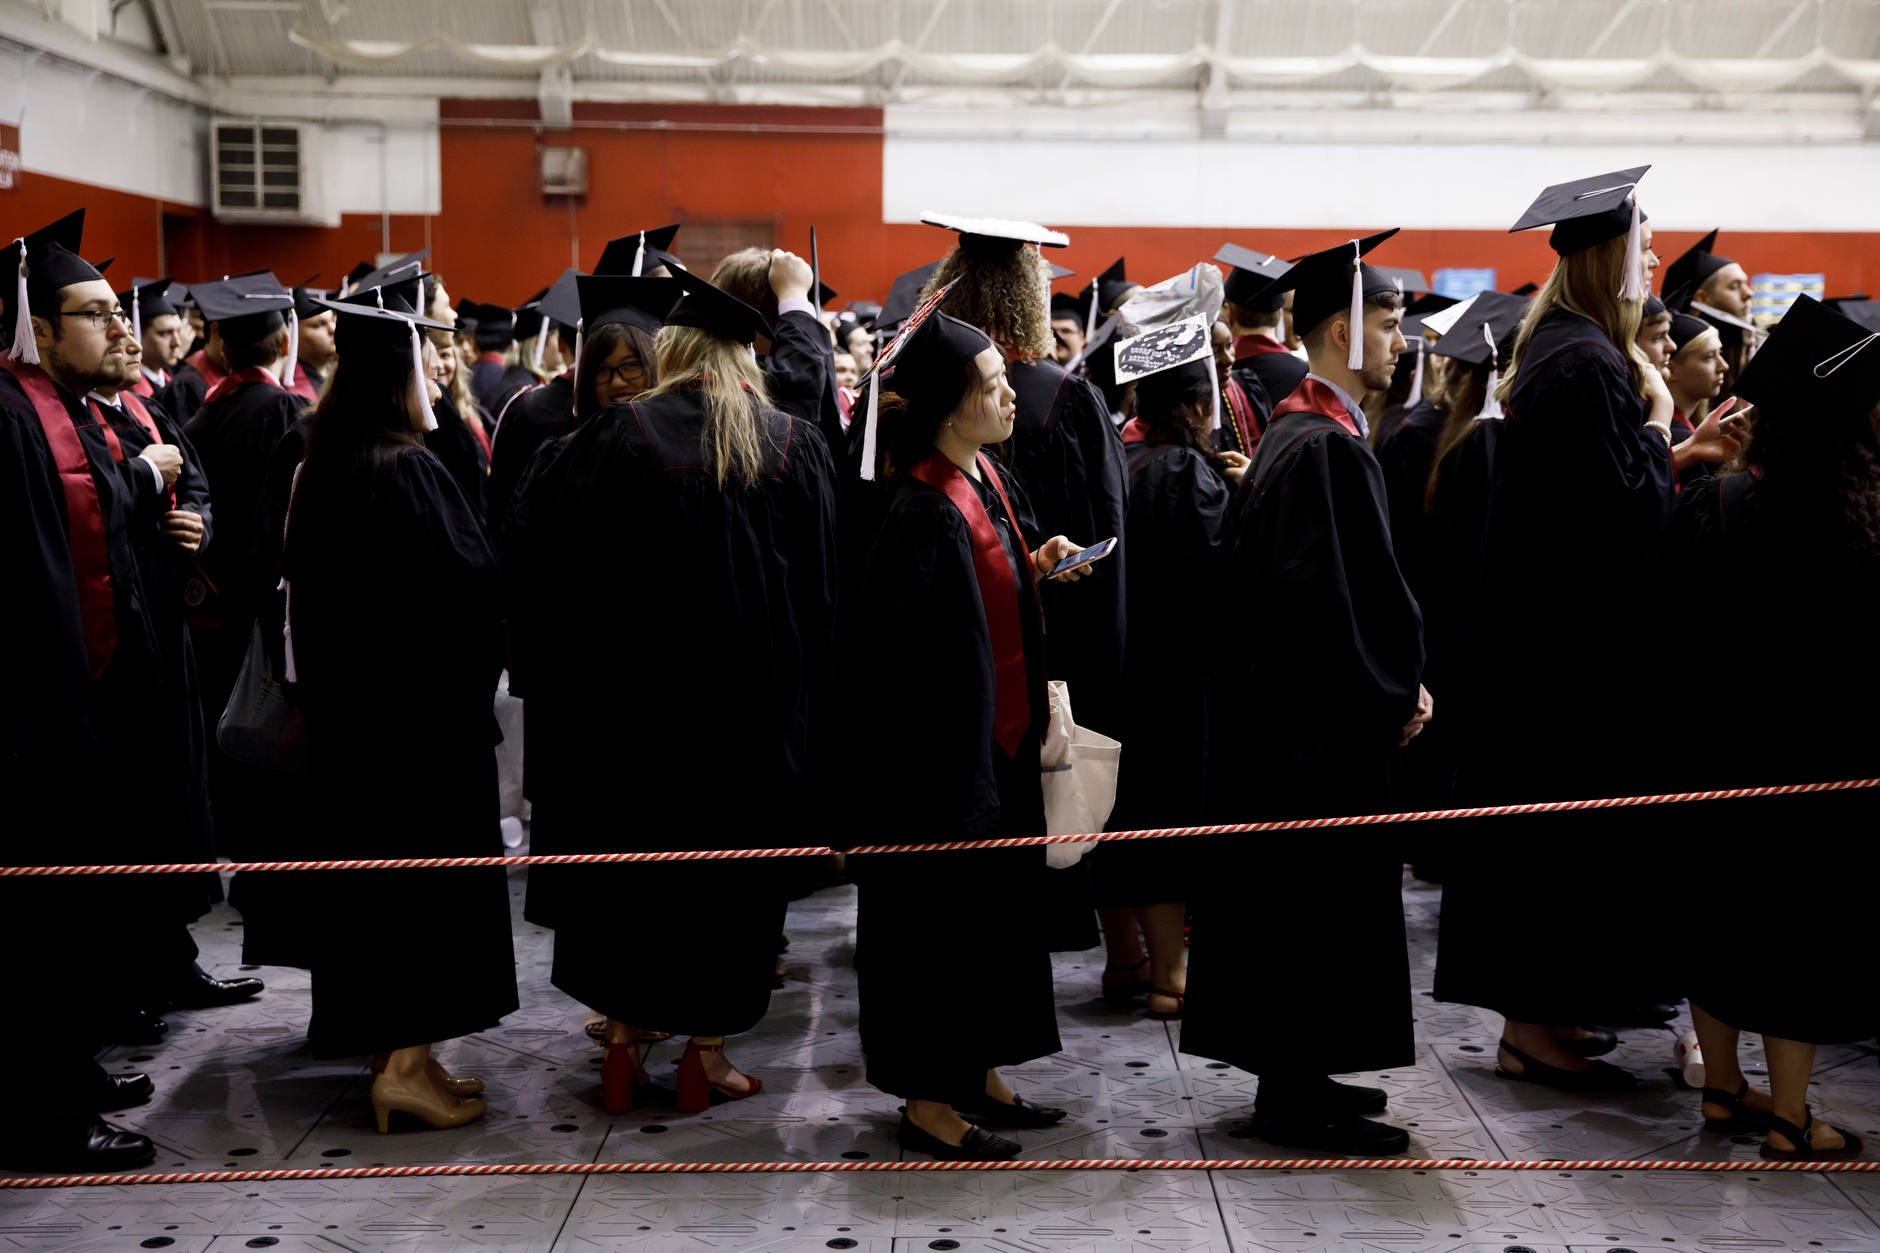 Graduates line up for the processional inside Mellencamp Pavilion before the Indiana University Bloomington Undergraduate Commencement on Saturday, May 4, 2019. (James Brosher/Indiana University)